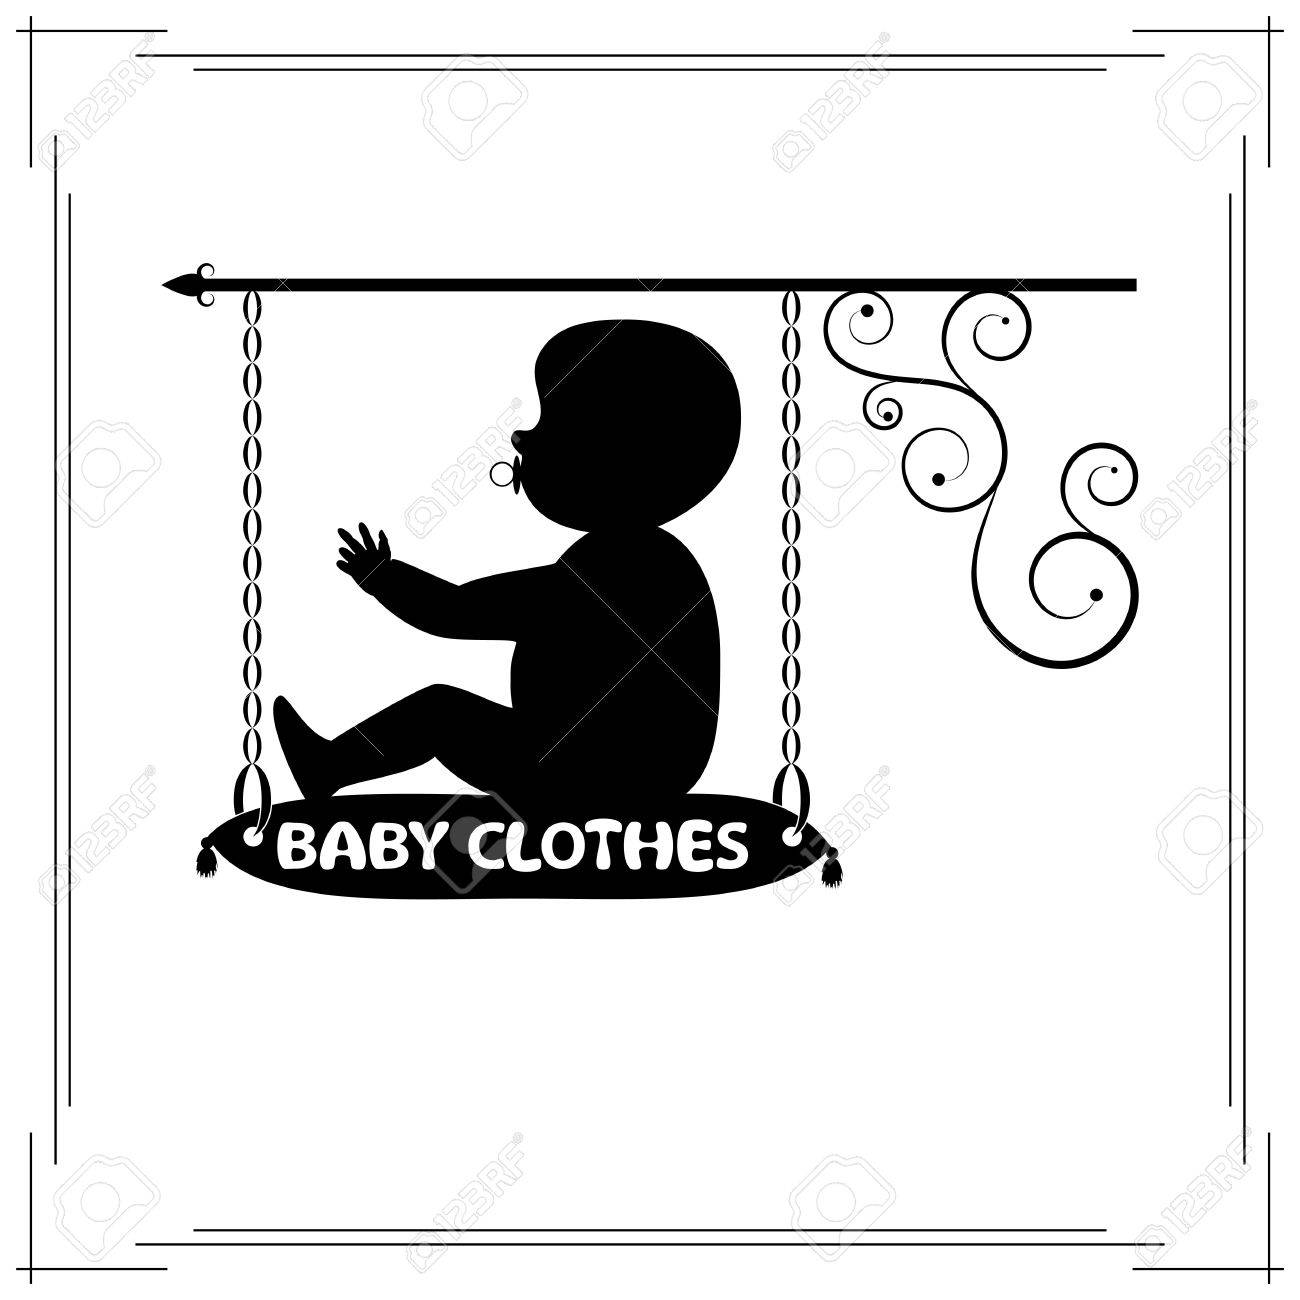 Baby Clothes Single Signboard Black Signboard Of Fashionable